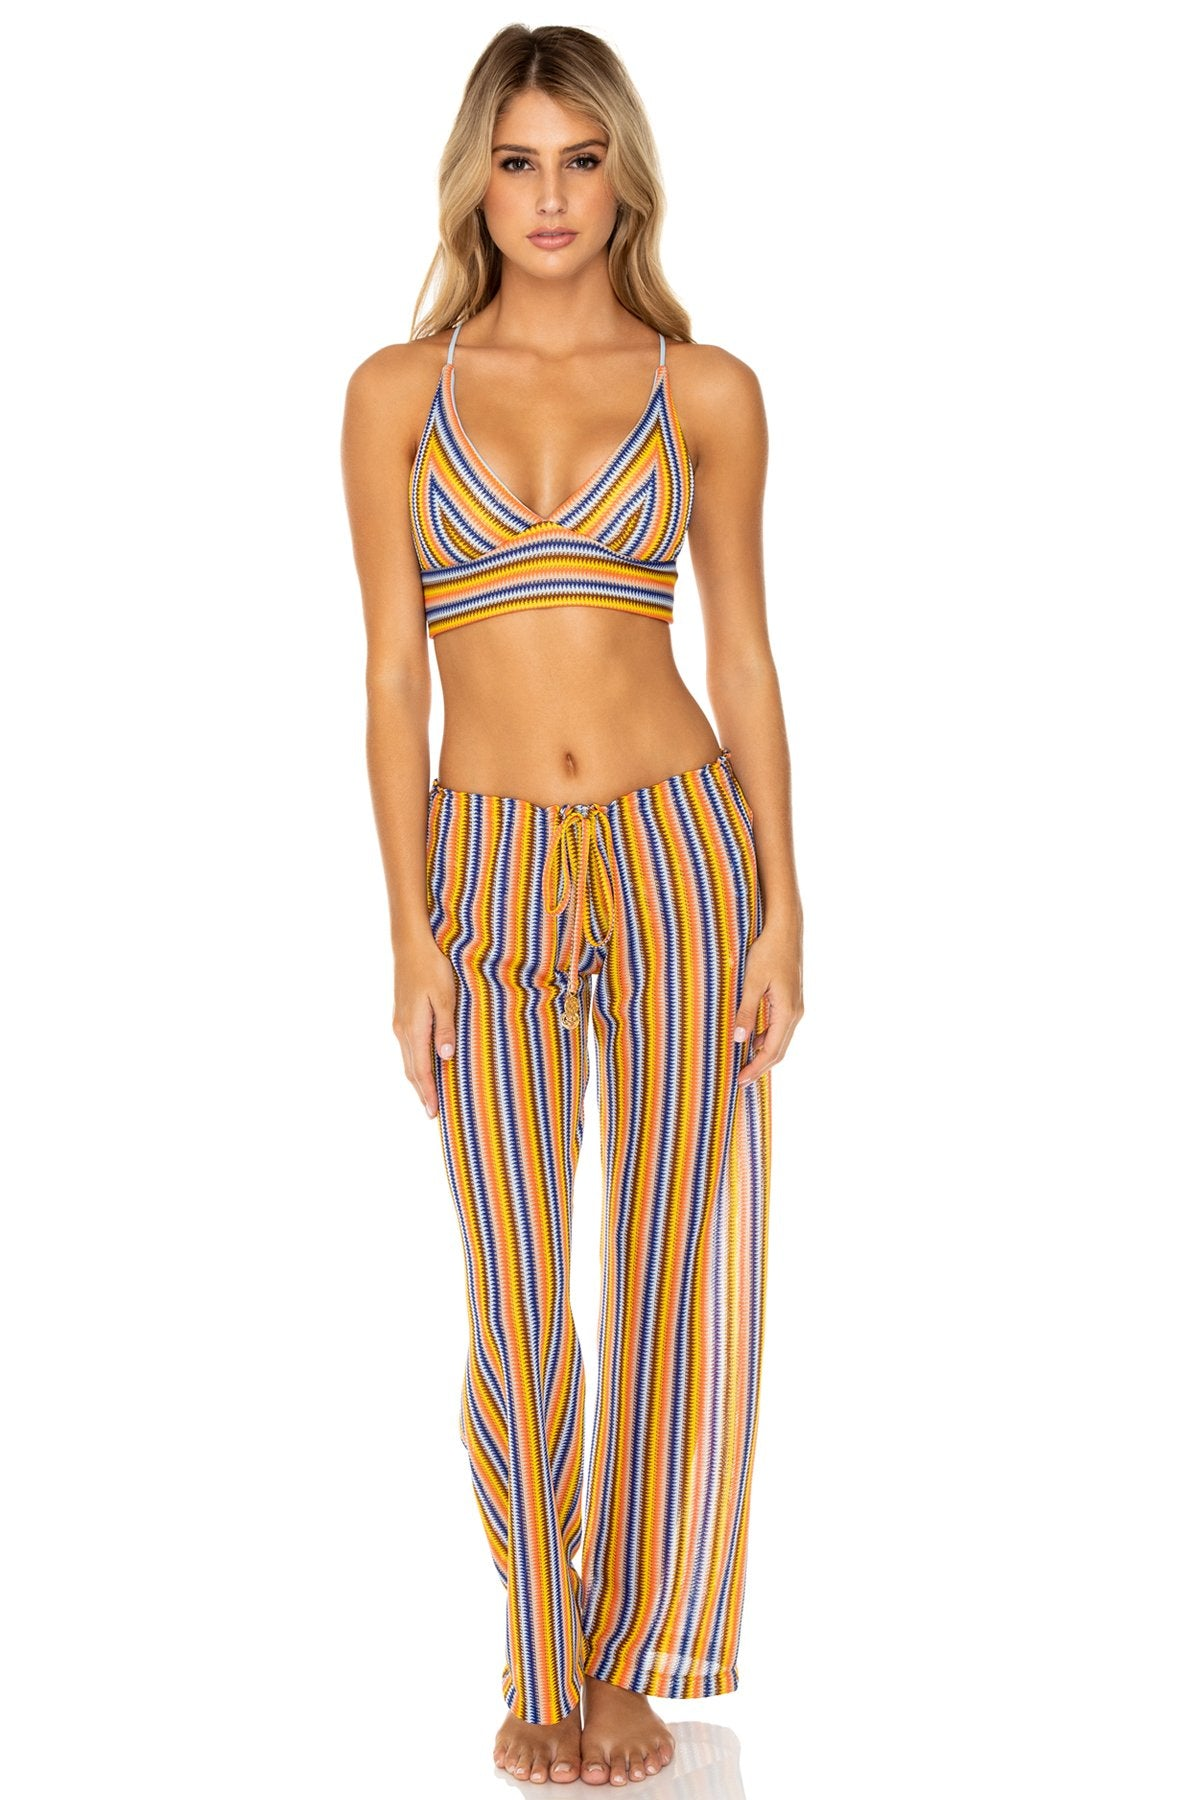 PLAZA ESPAÑA - Halter Cross Back Bustier Top & Beach Pant • Multicolor